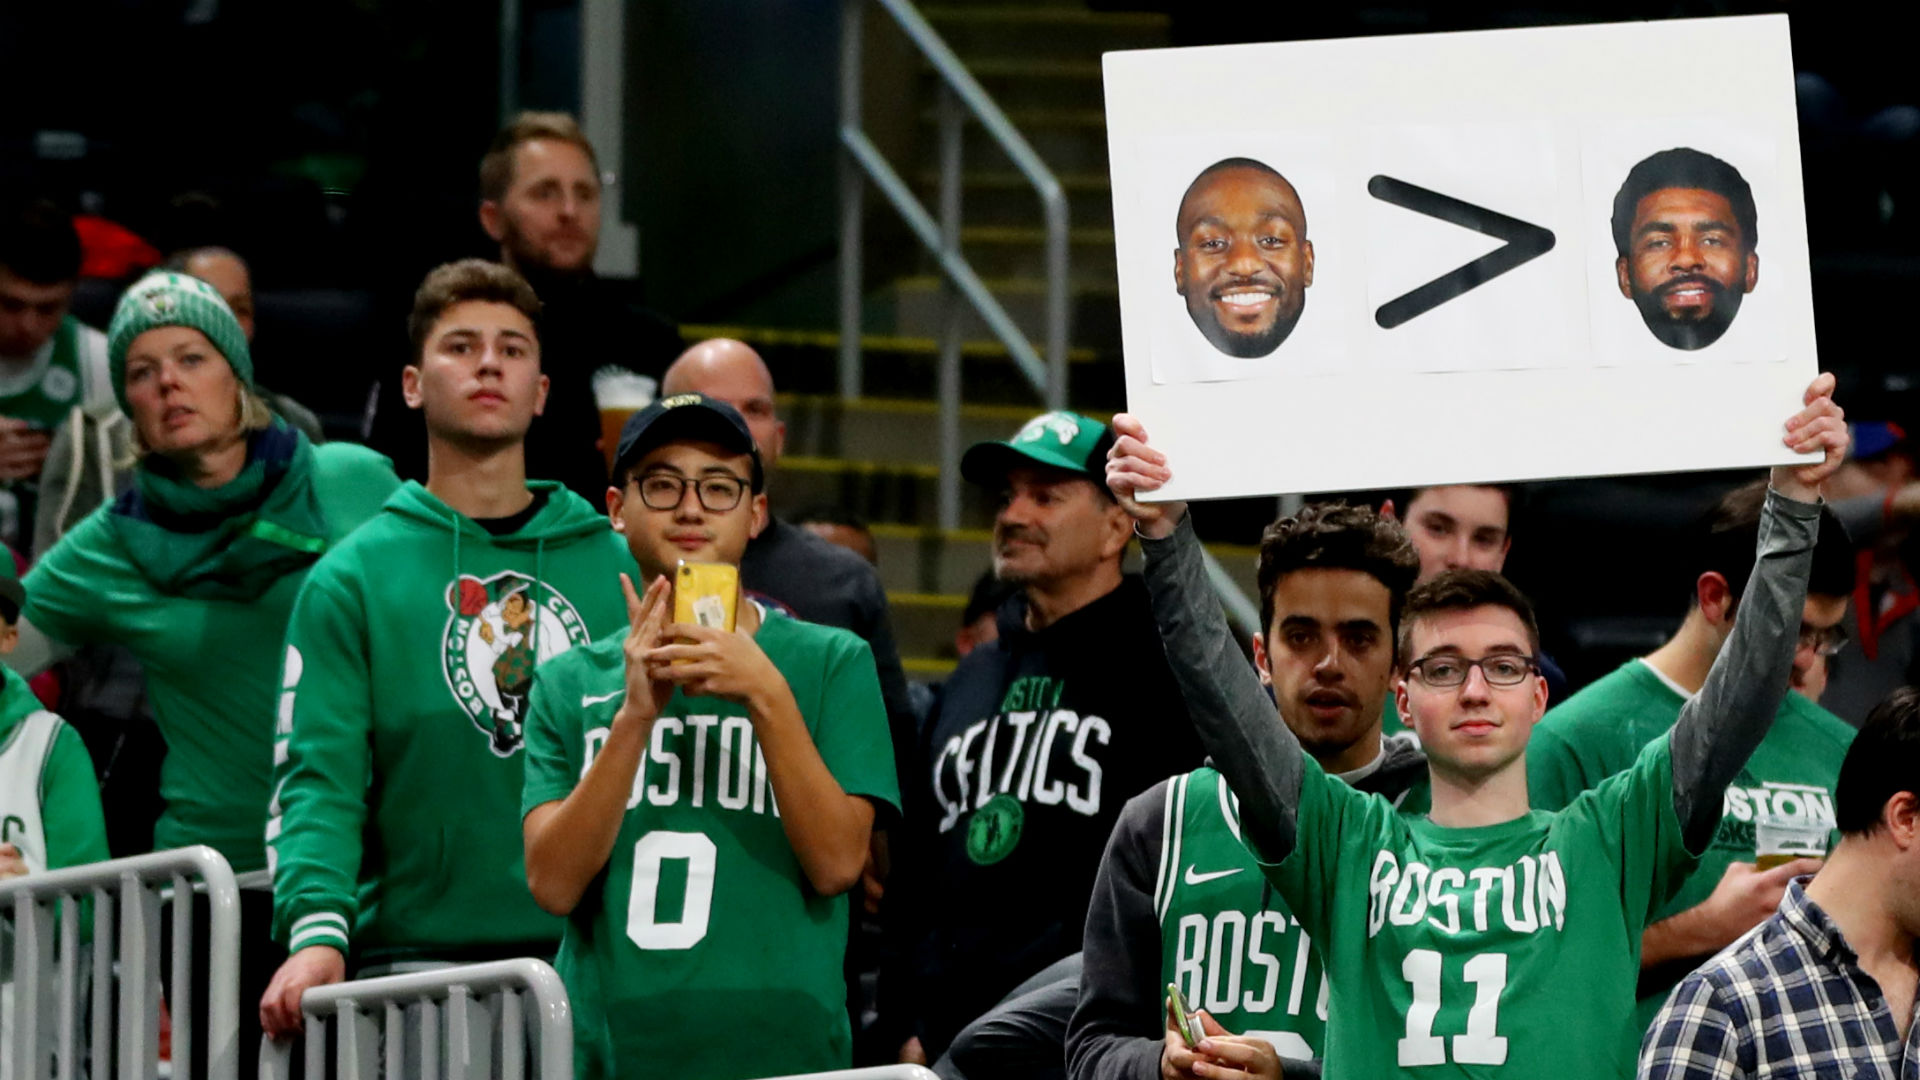 Why Kyrie Irving wants to play Celtics' Kemba Walker 1-on-1